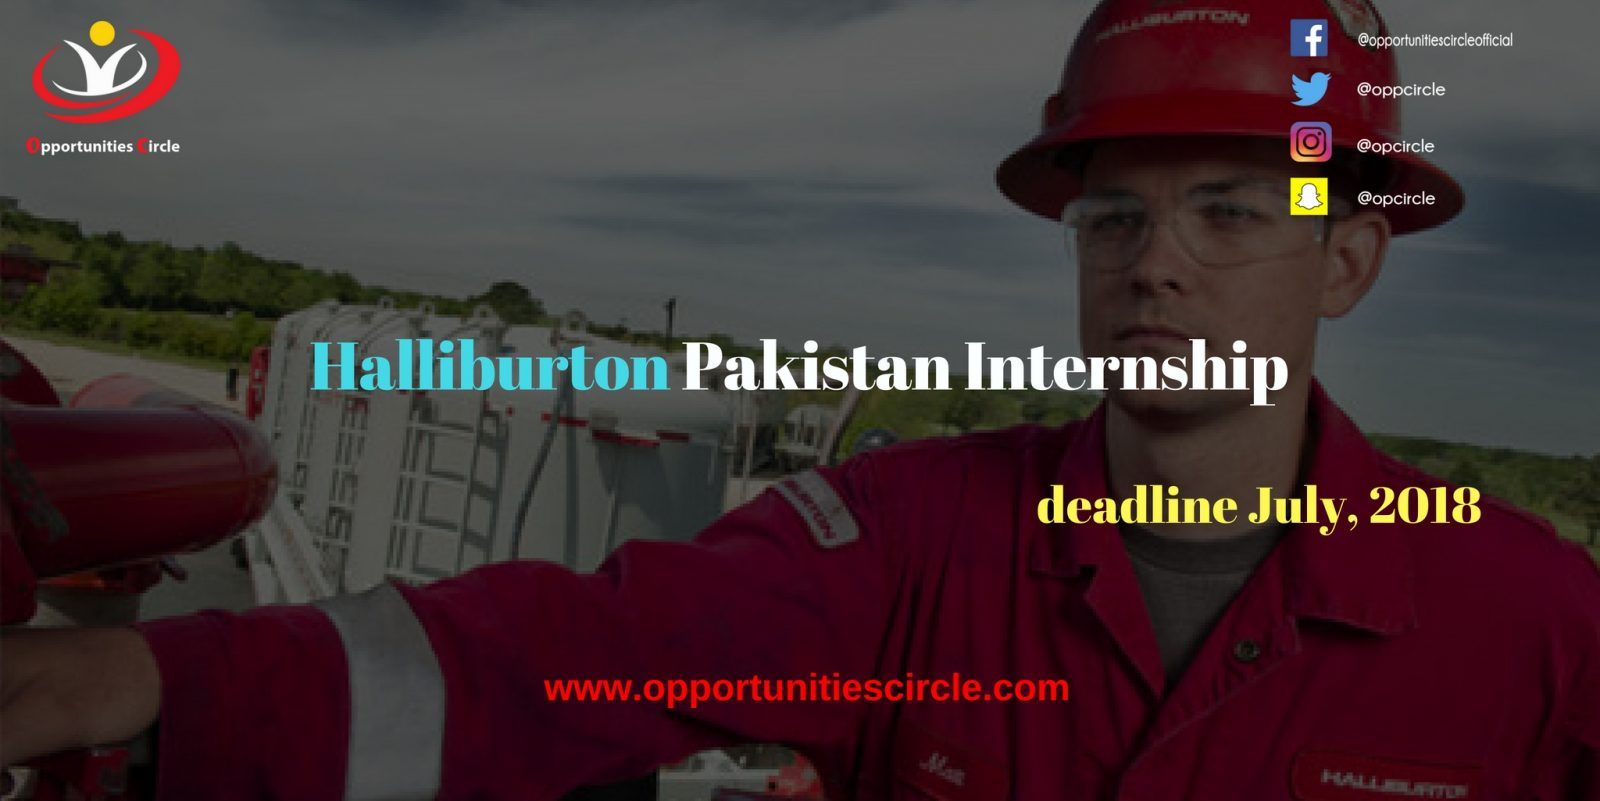 Halliburton Pakistan Internship - Opportunities Circle